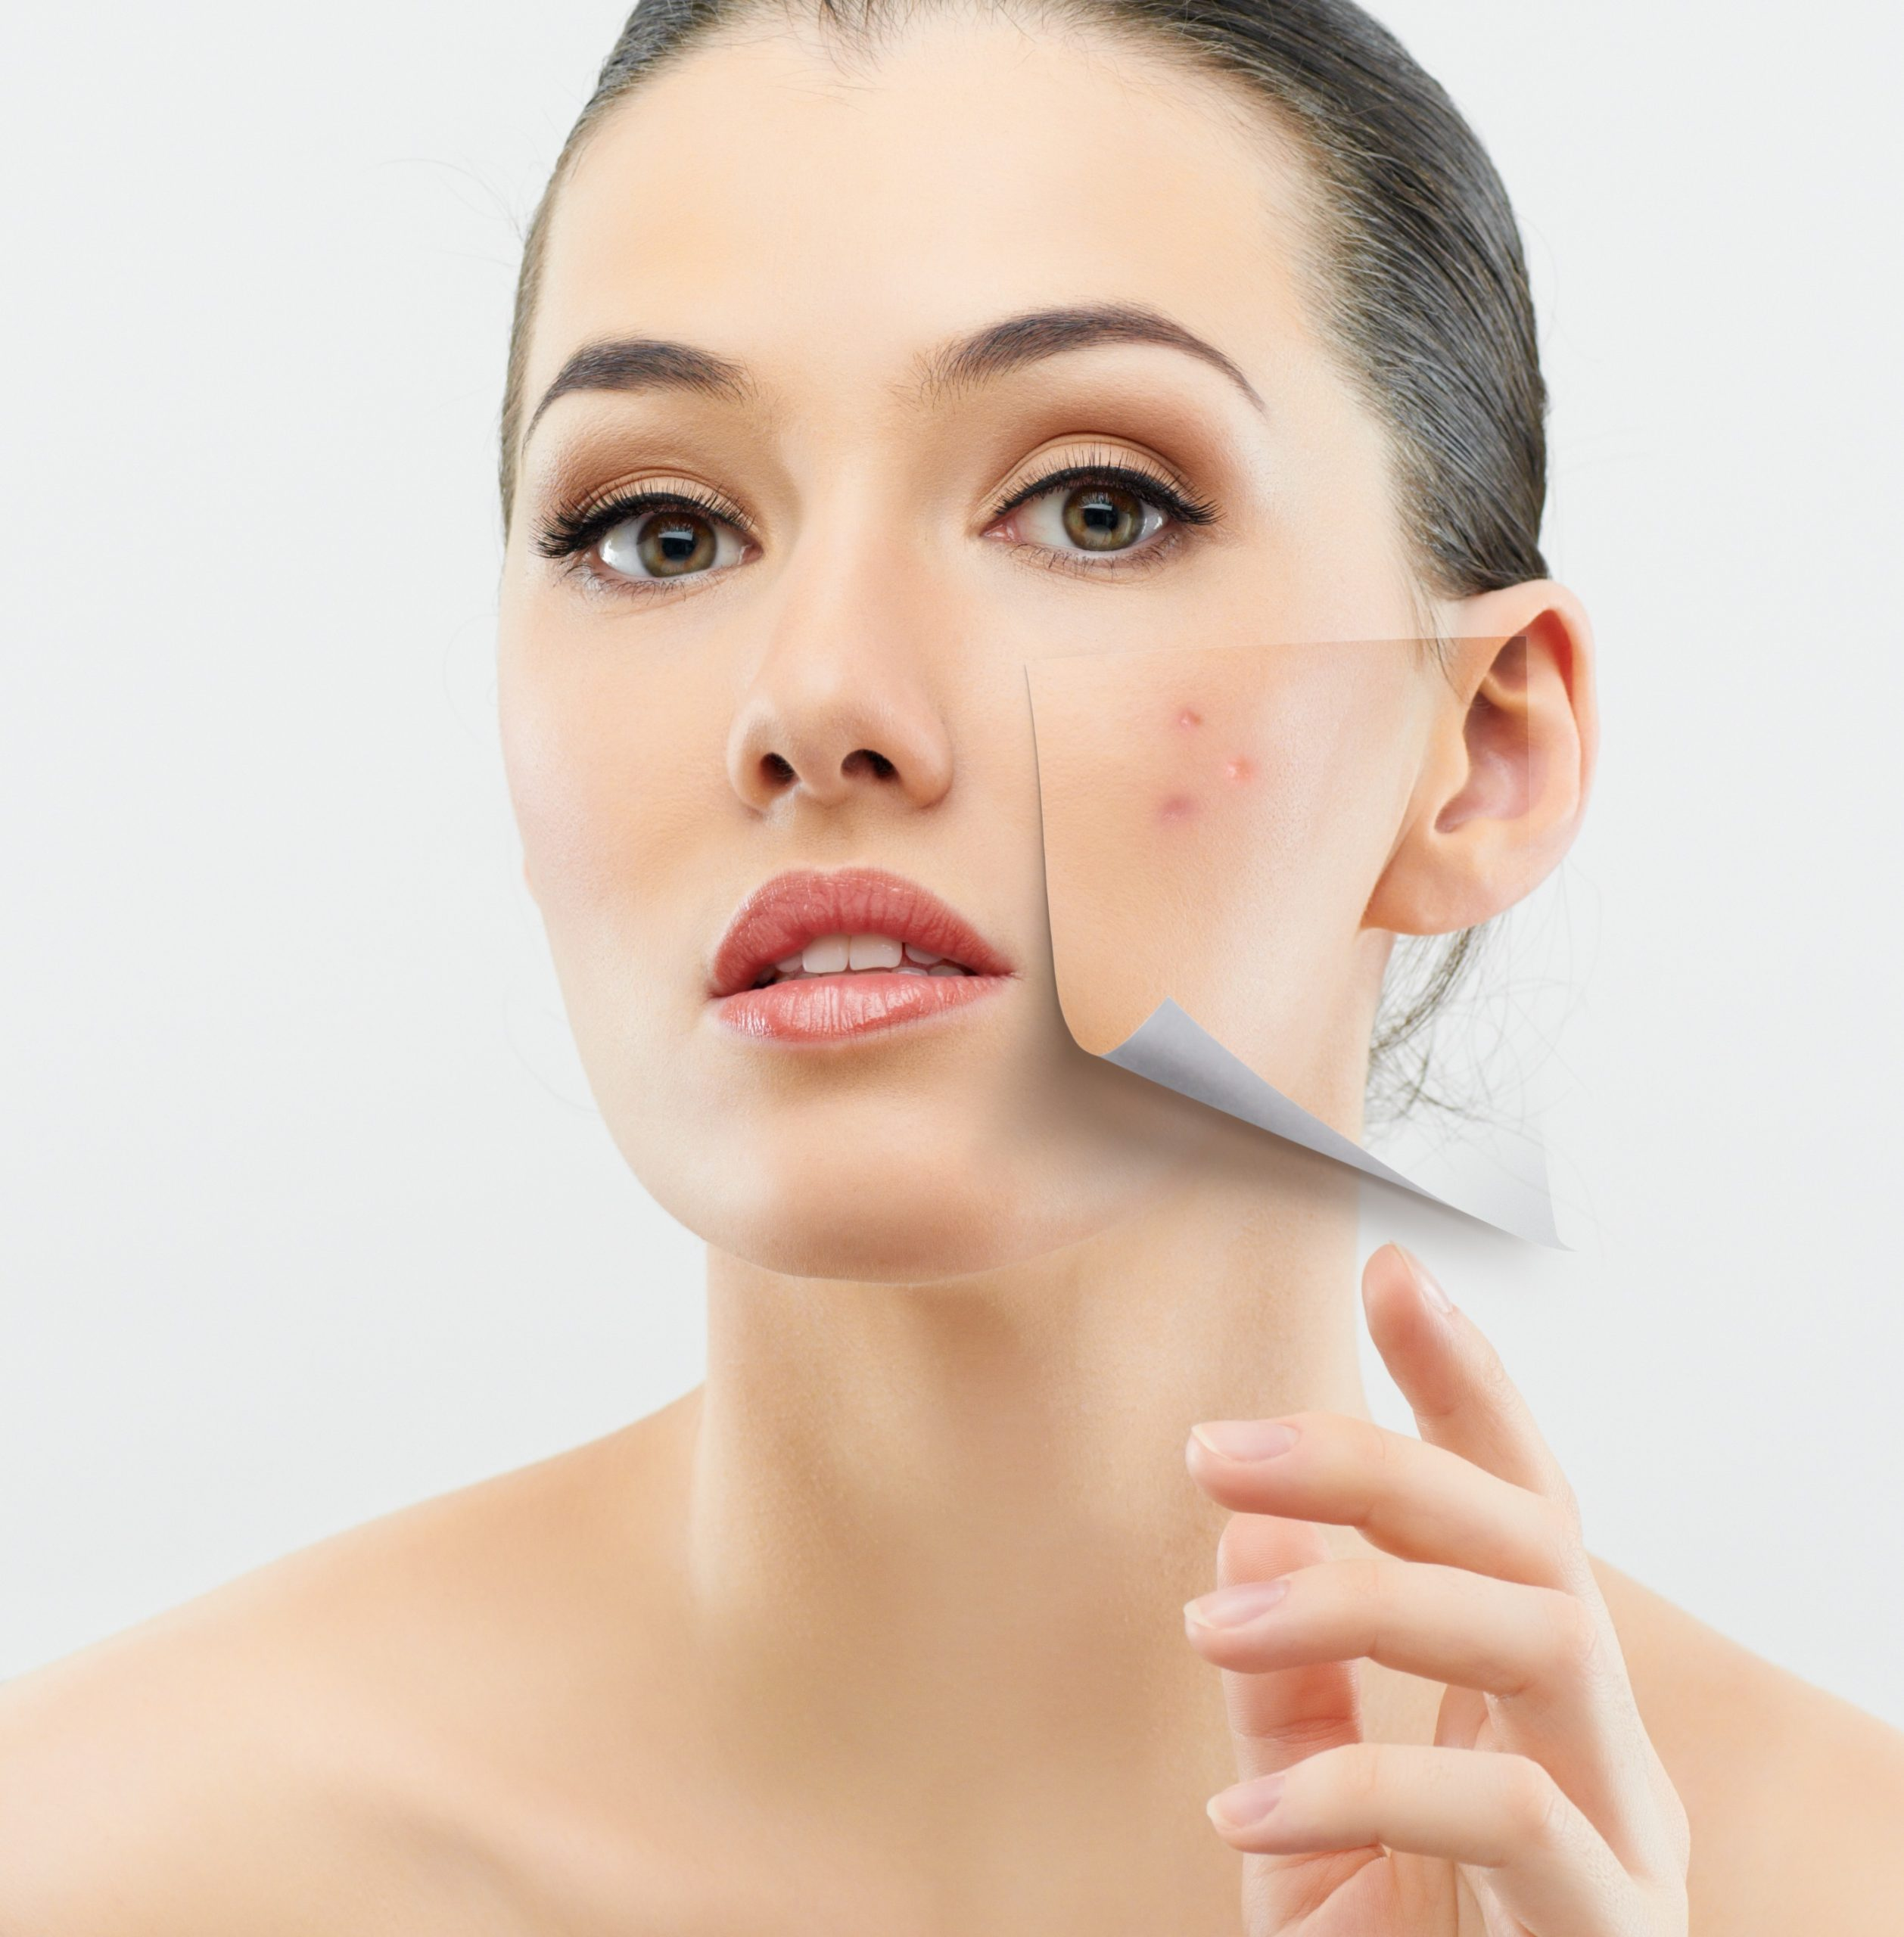 Top 10 Advanced Treatment For Acne